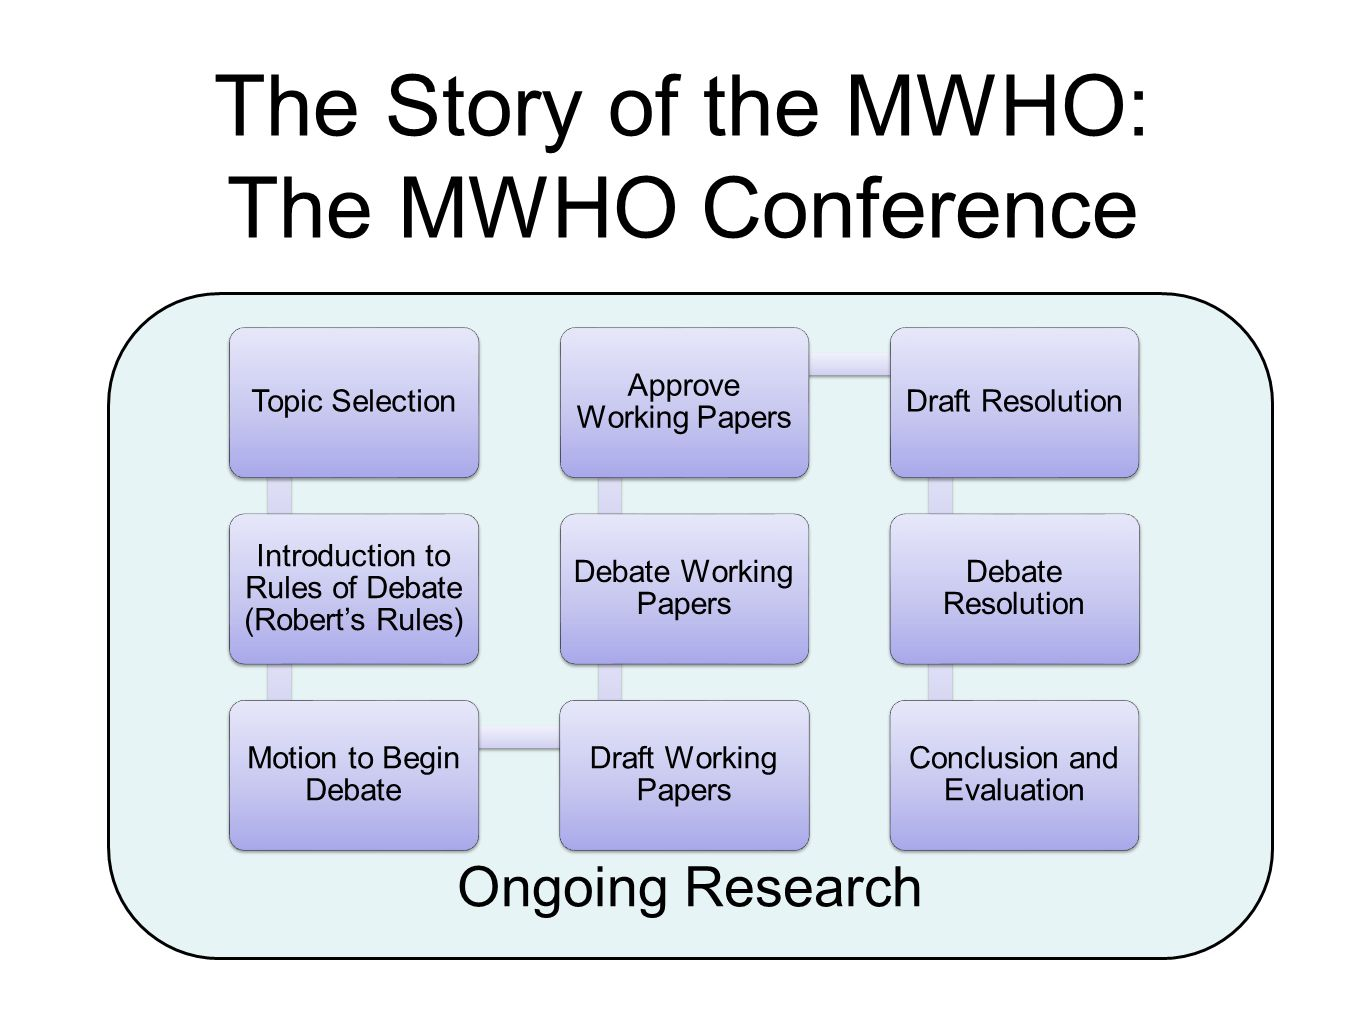 The Story of the MWHO: The MWHO Conference Ongoing Research Topic Selection Introduction to Rules of Debate (Robert's Rules) Motion to Begin Debate Draft Working Papers Debate Working Papers Approve Working Papers Draft Resolution Debate Resolution Conclusion and Evaluation